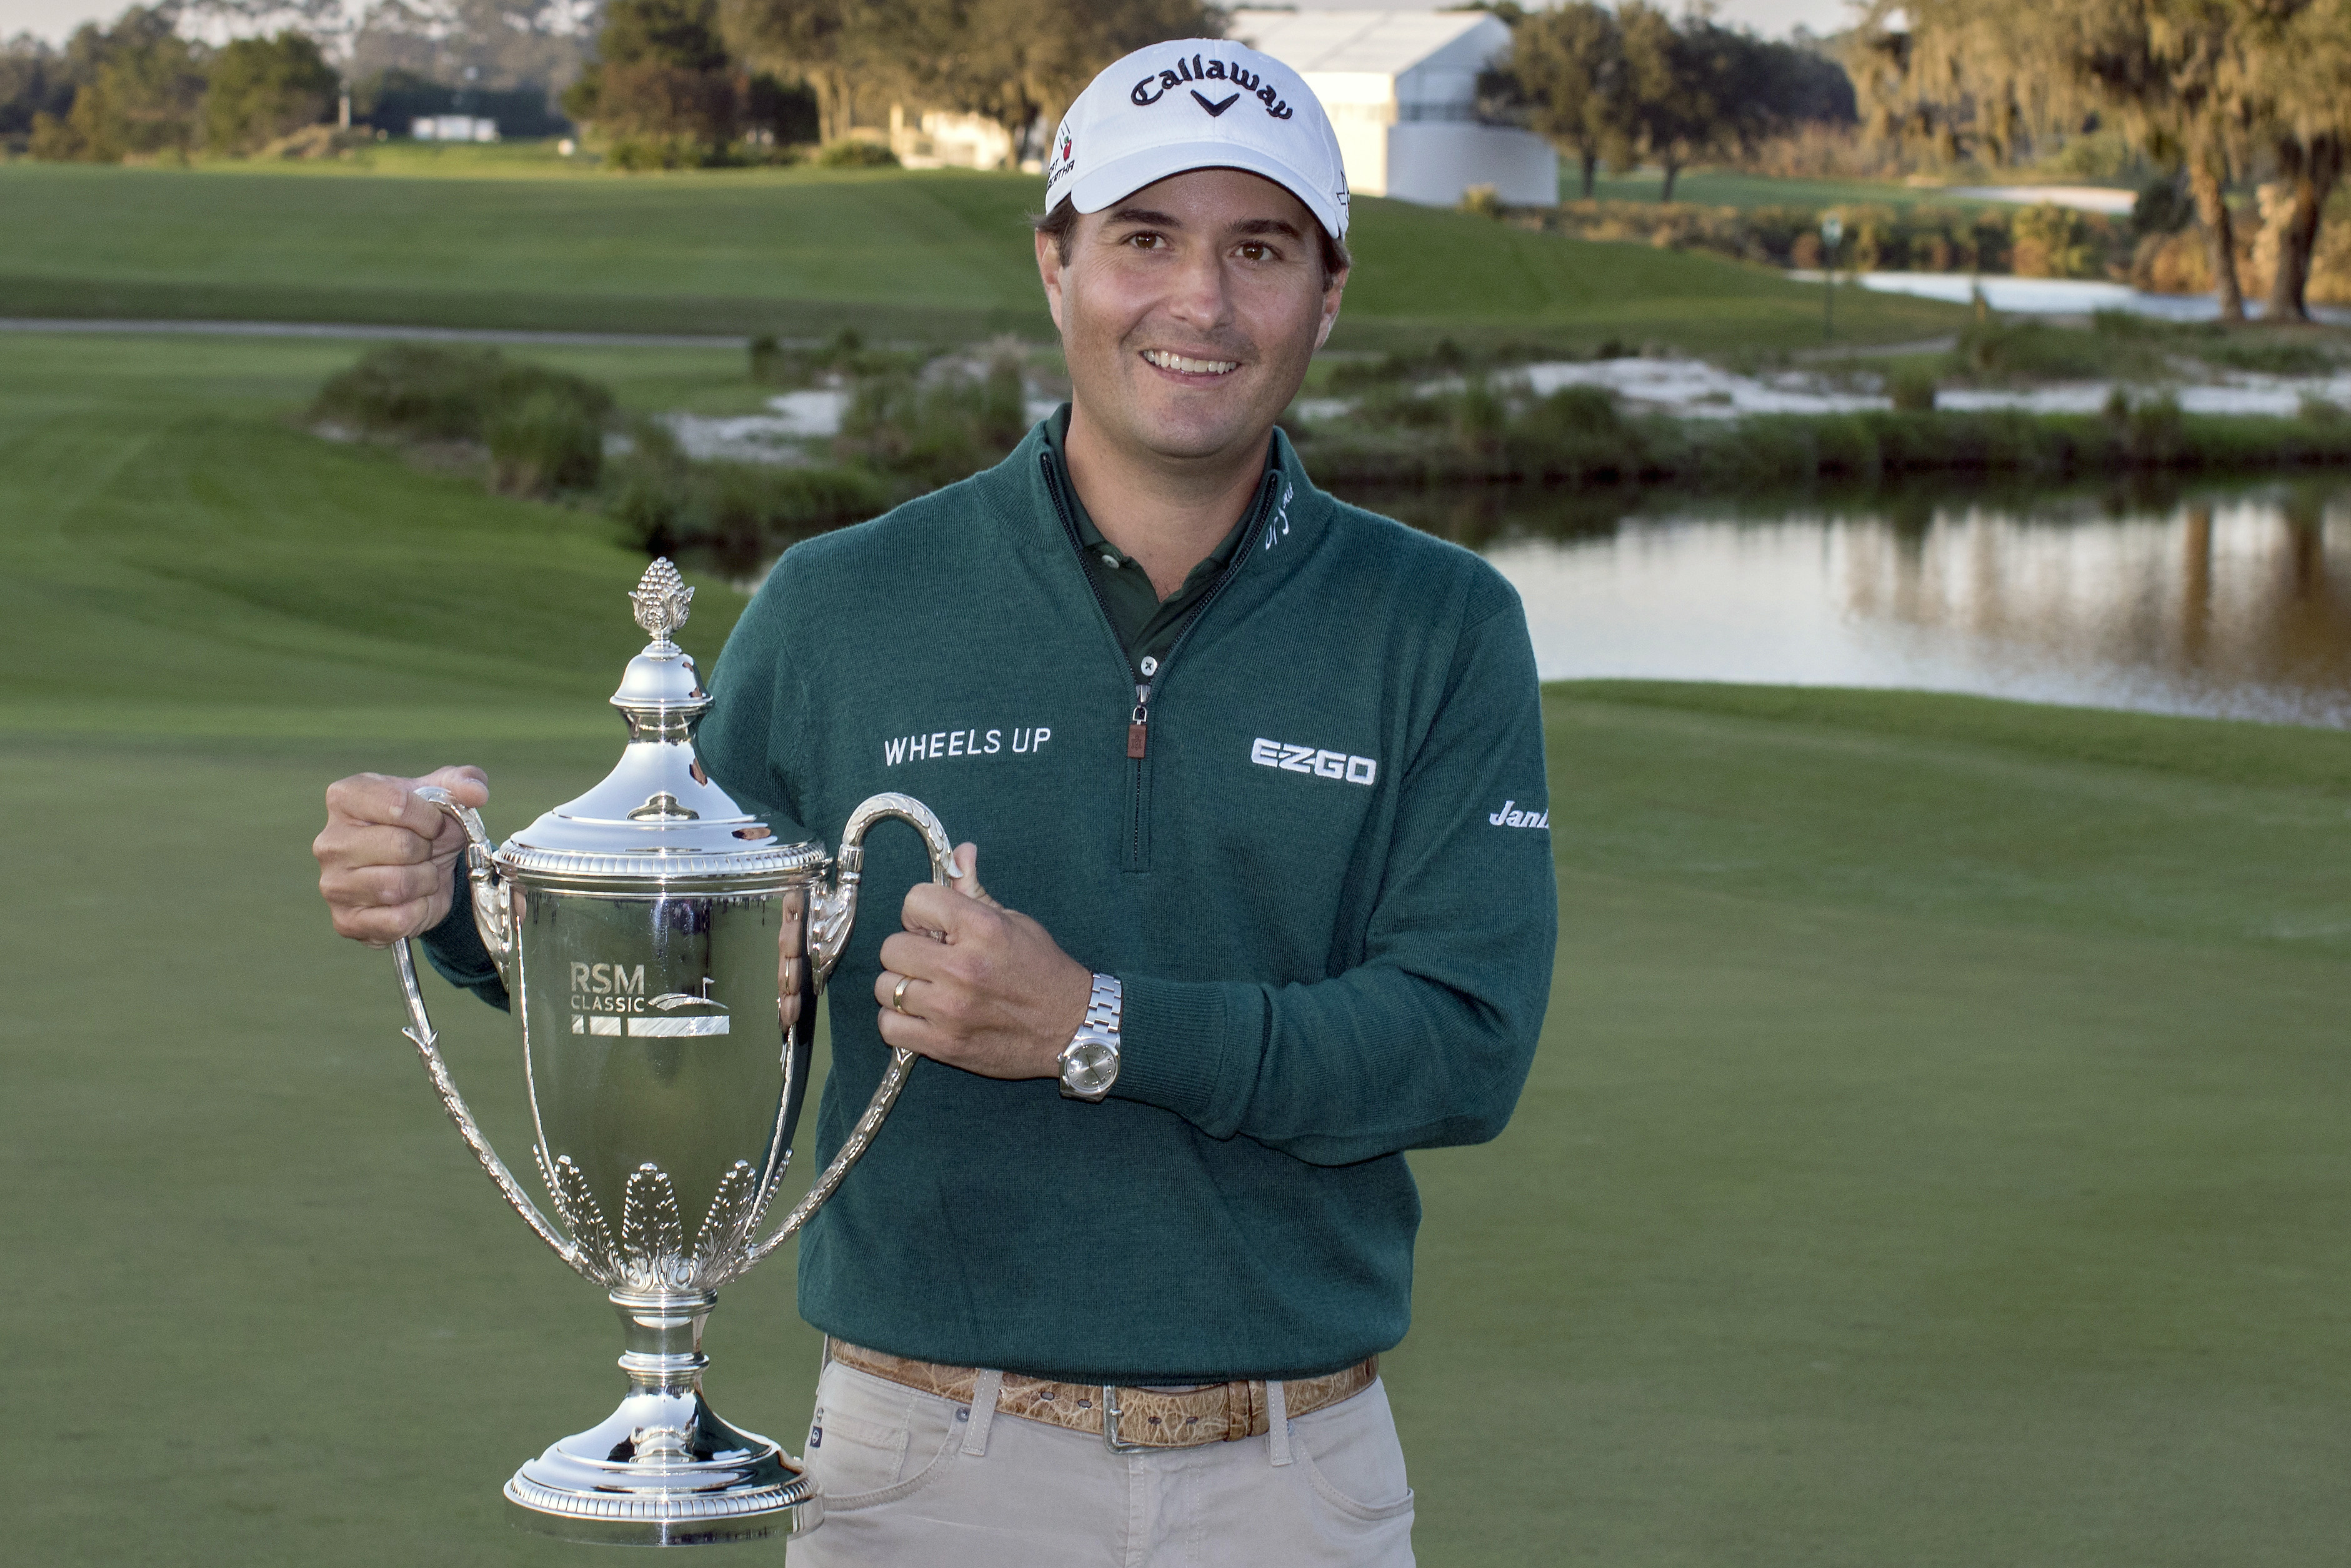 Kevin Kisner holds the RSM Classic trophy after his winning the final round at the RSM Classic golf tournament Sunday, Nov. 22, 2015, in St. Simons Island, Ga. (AP Photo/Stephen B.